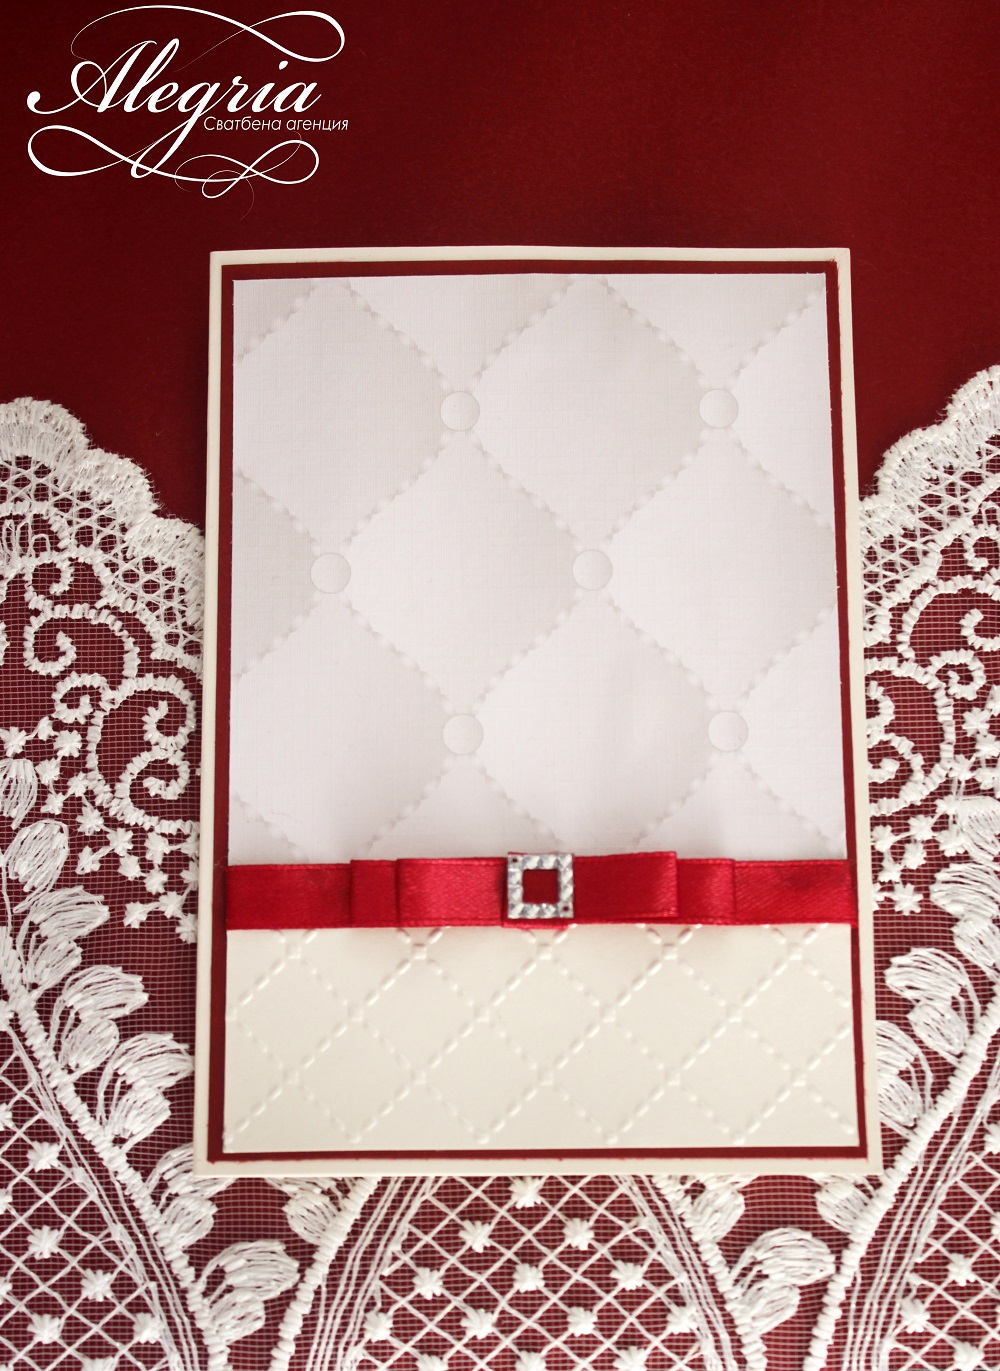 Wedding invitations Alegria, Wedding Invitations